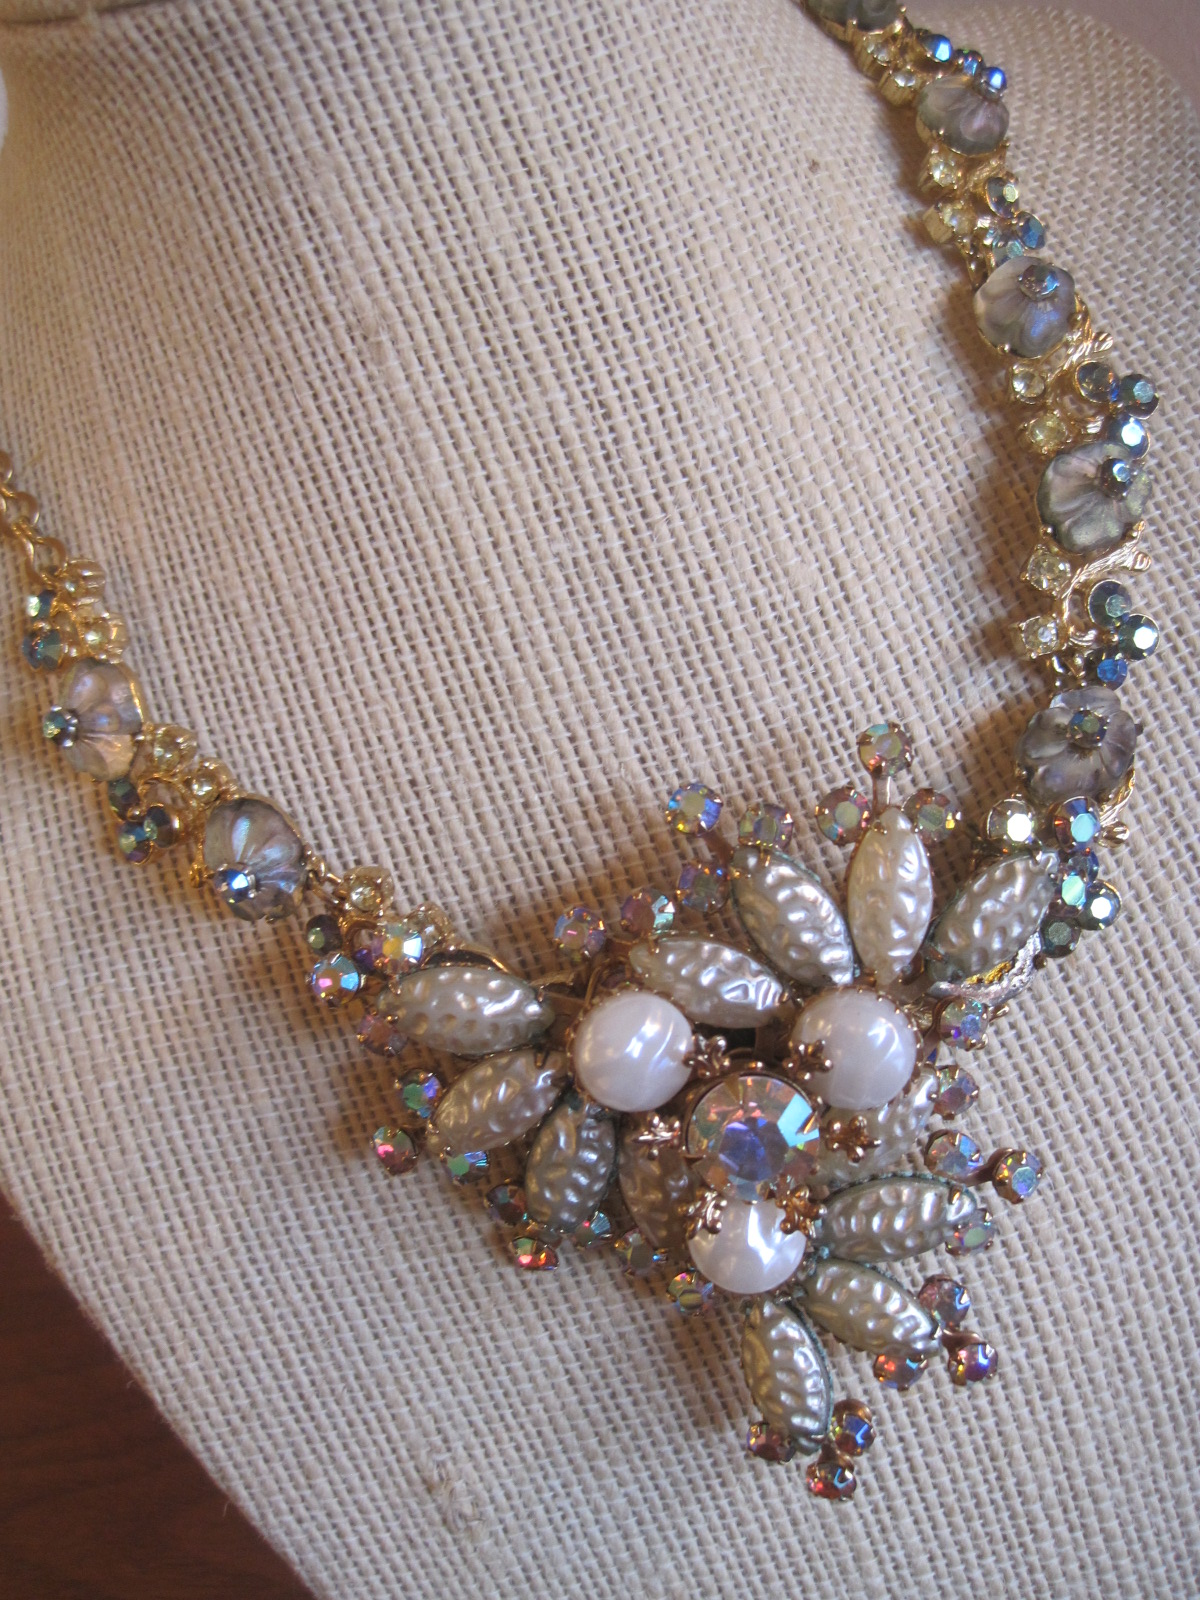 Necklace and earrings with vintage elements